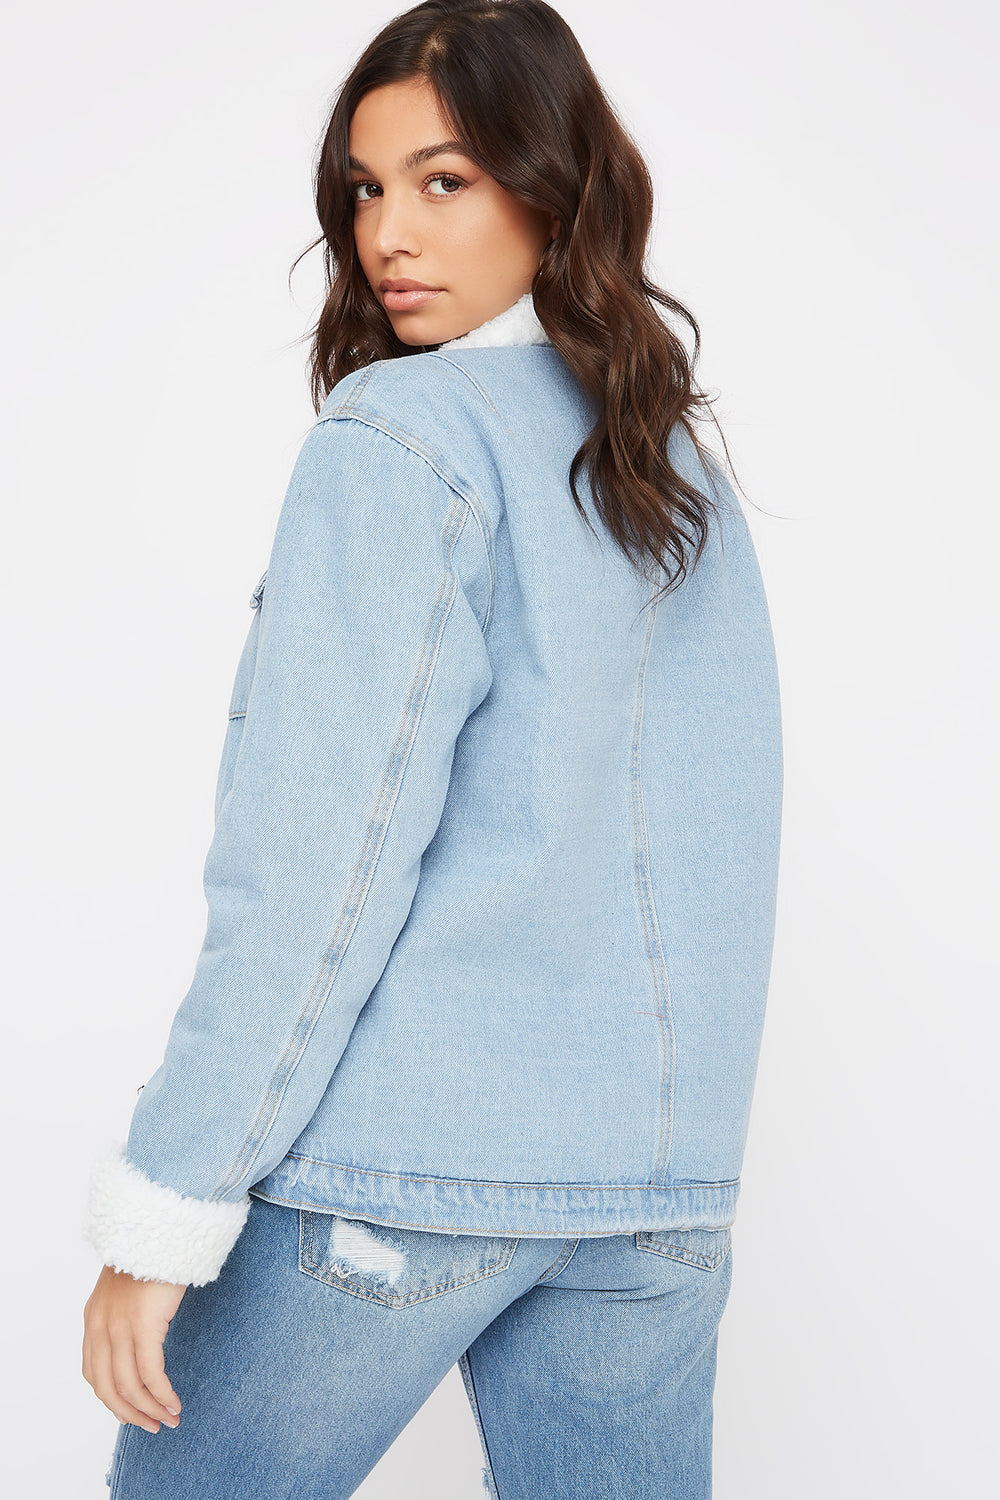 Sherpa Lined Denim Jacket Light Denim Blue